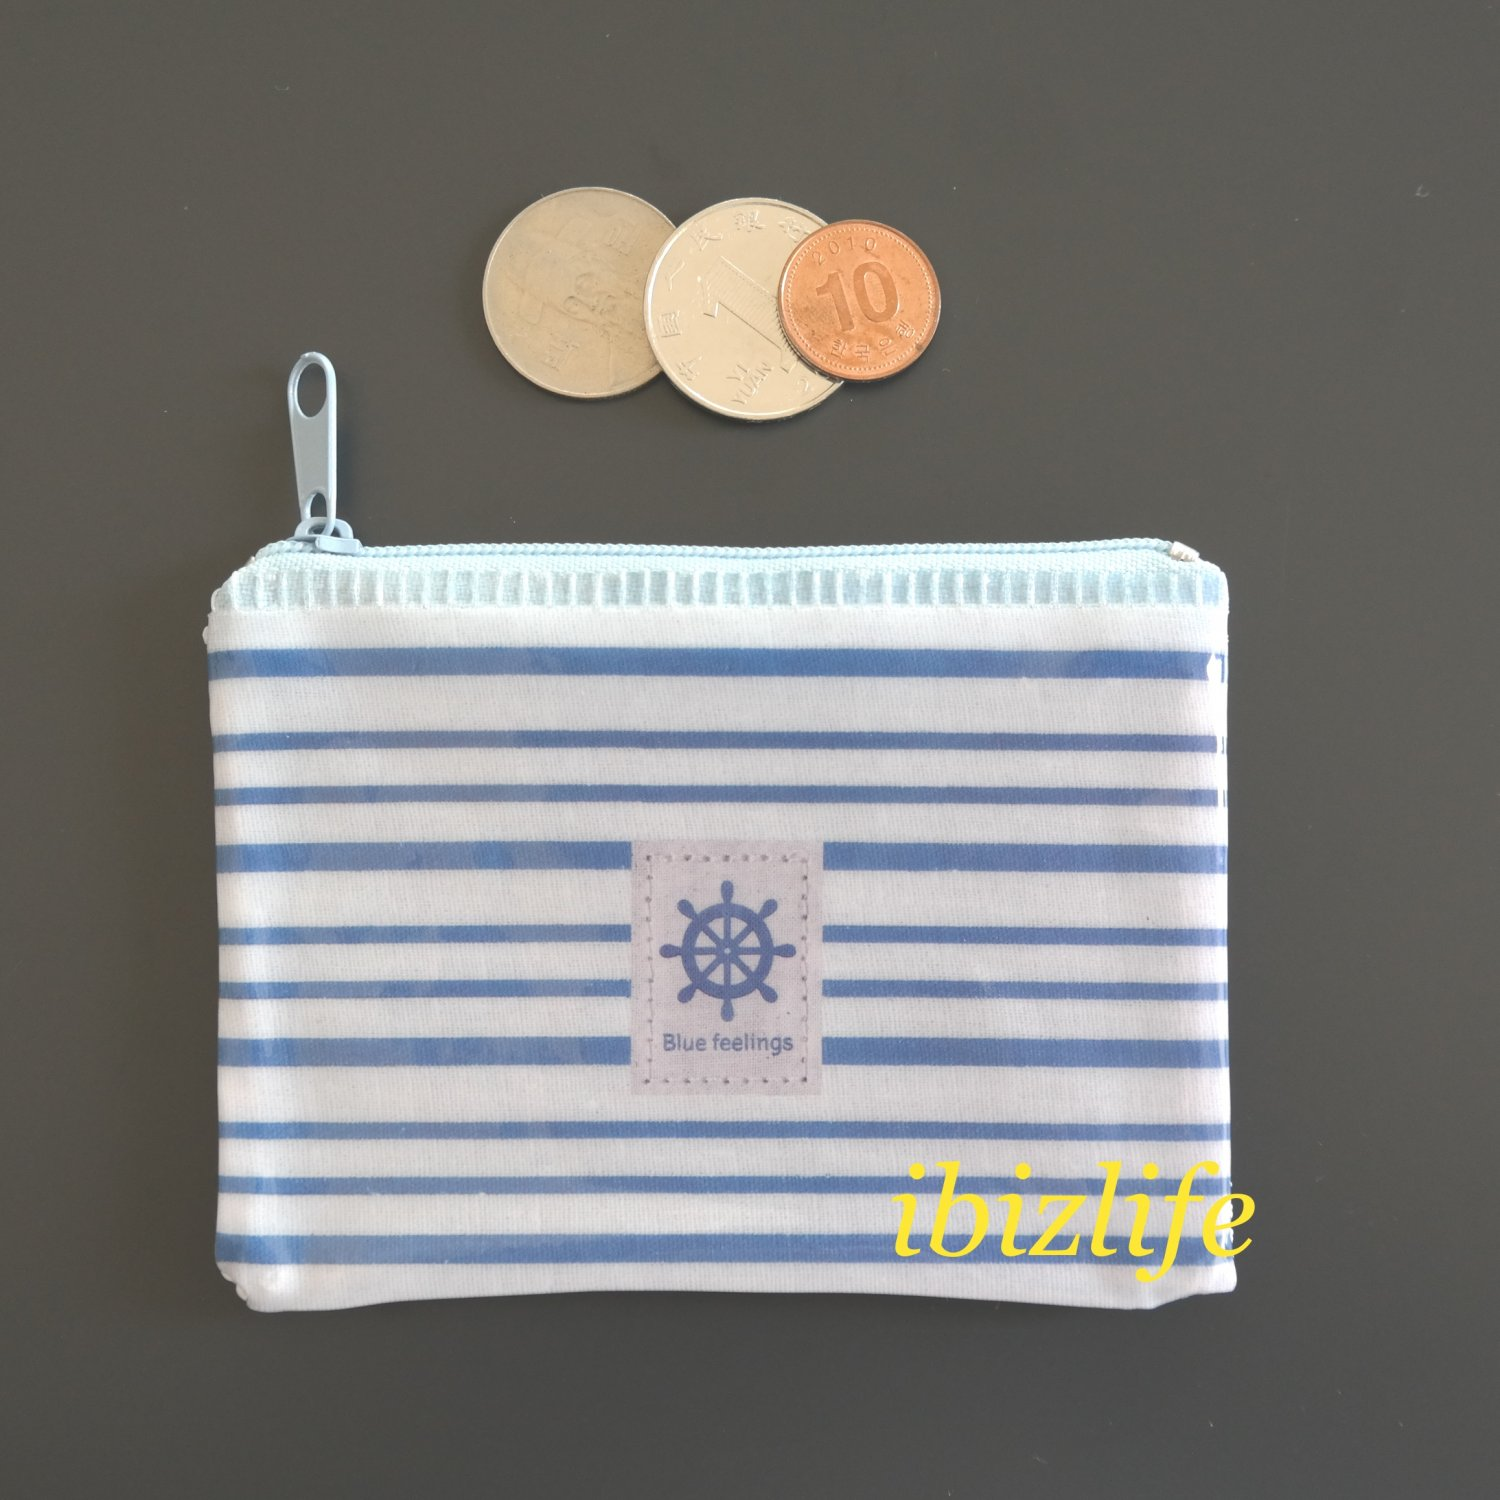 Fashion pocket for coins or cards with Steering wheel printing(FP08)